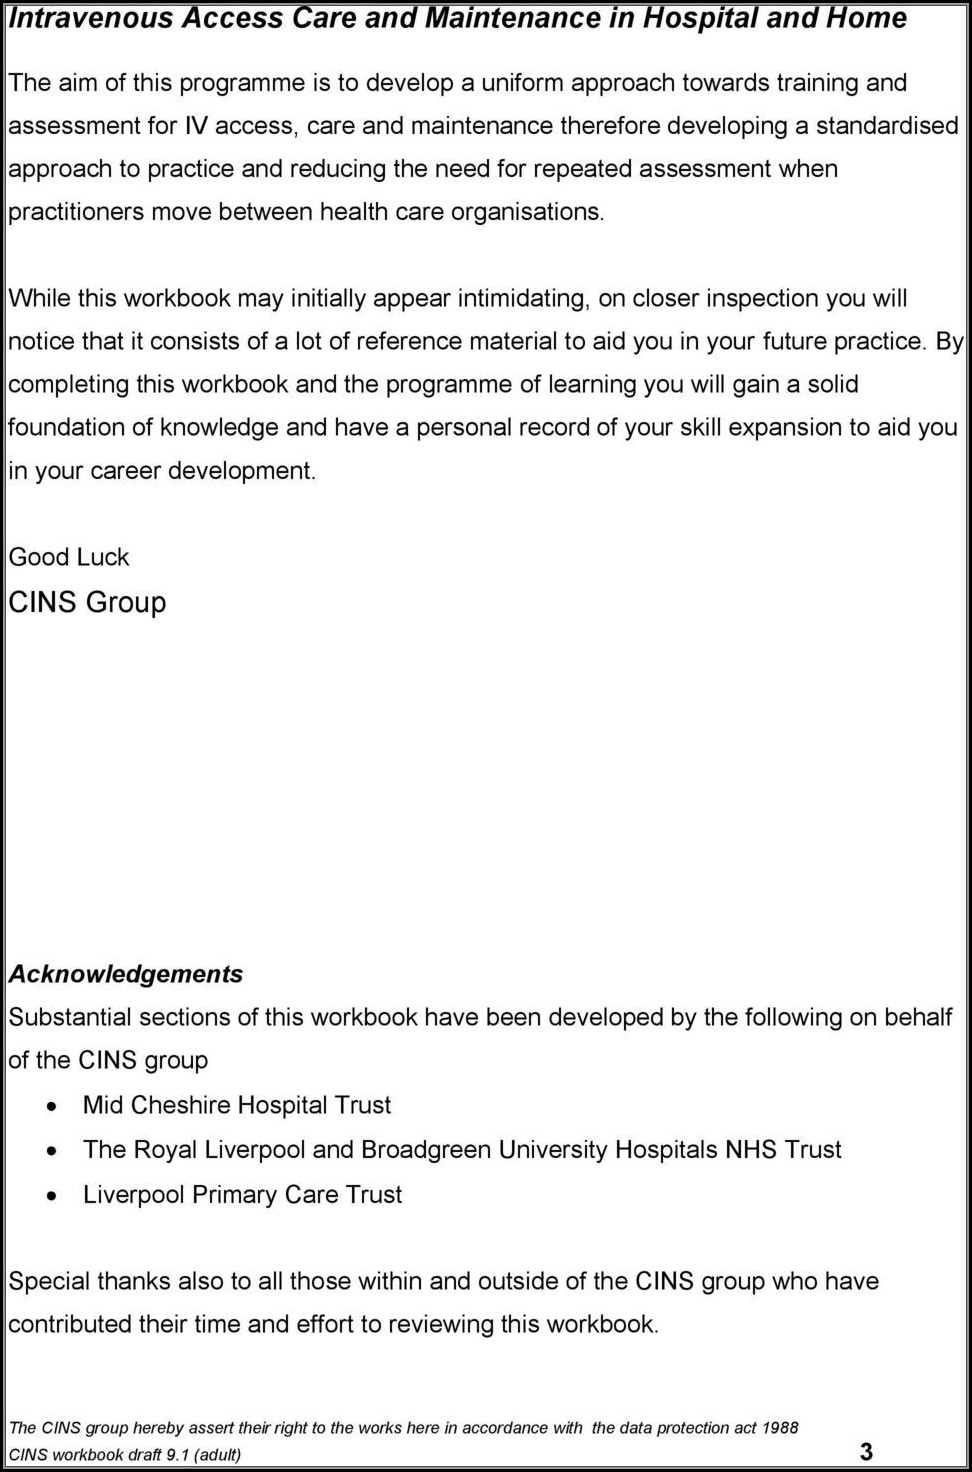 Resume Format For Physiotherapy Jobs